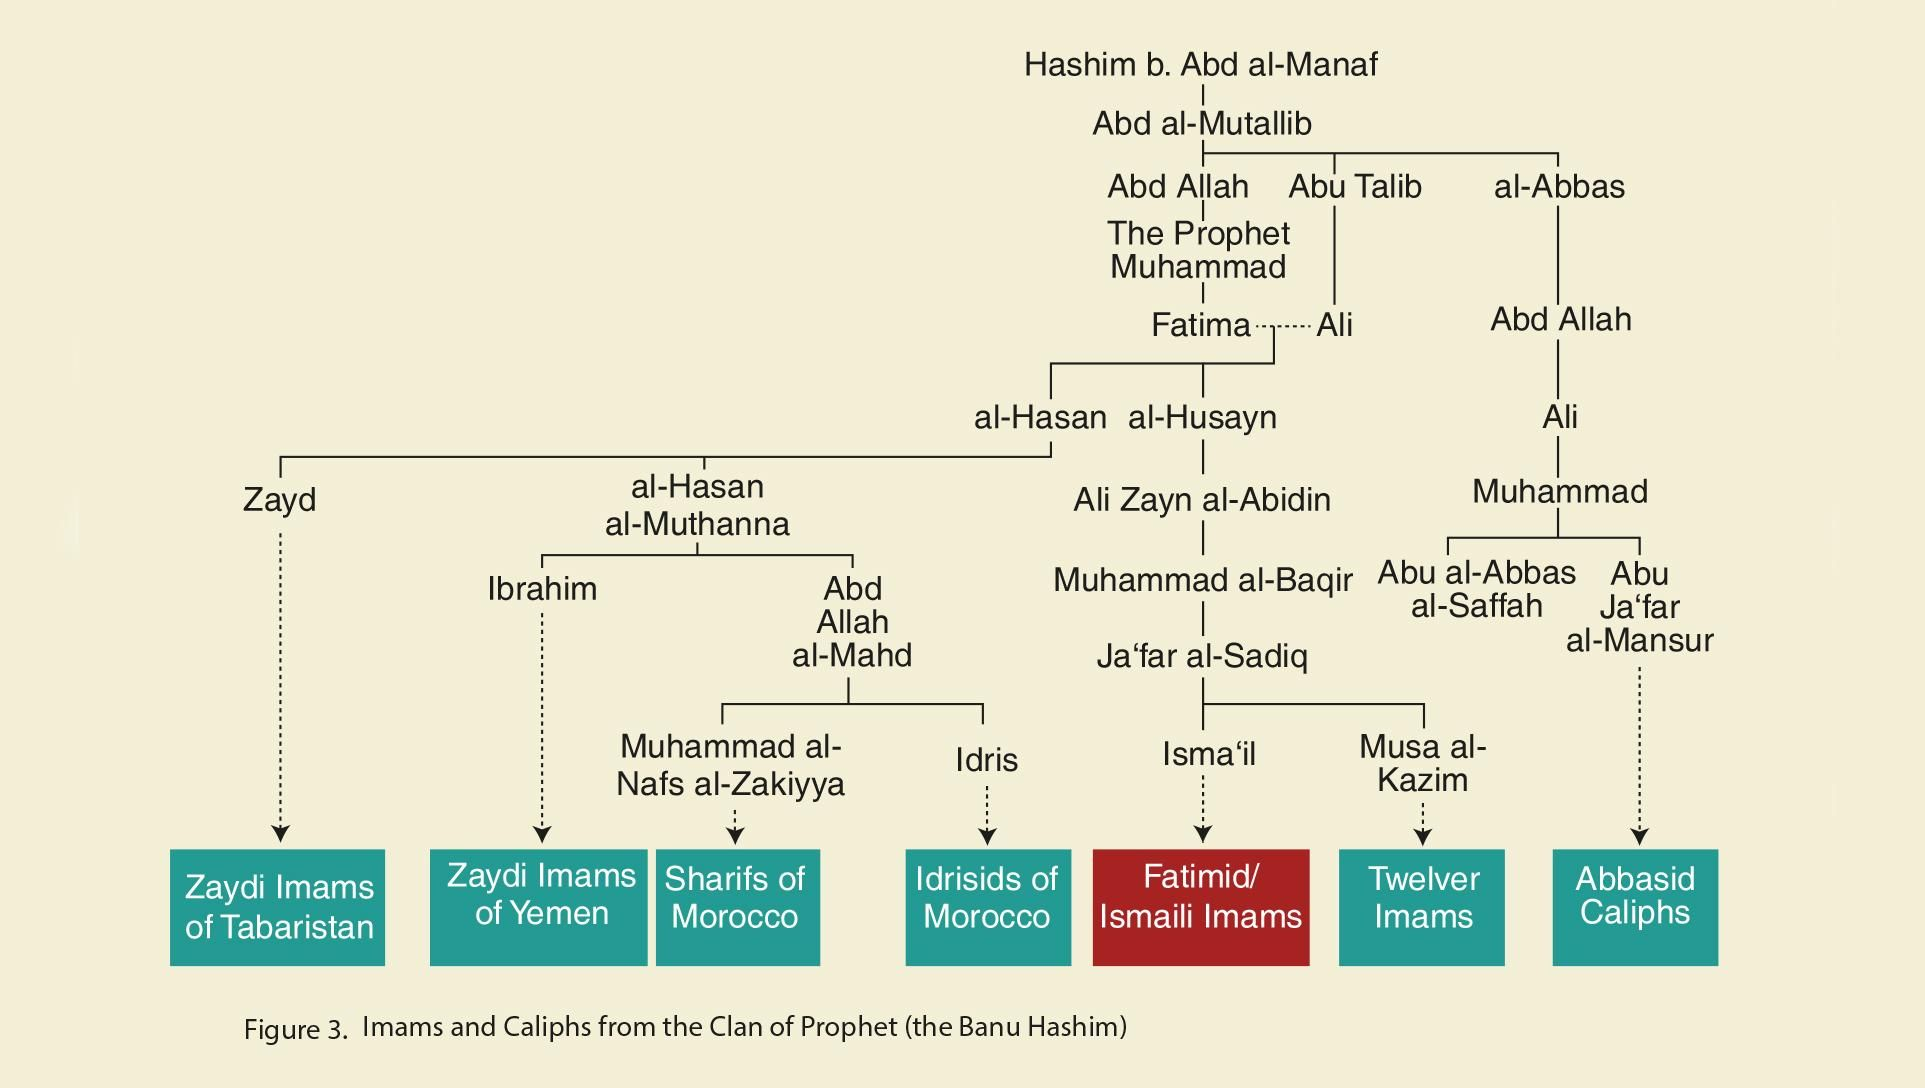 Genealogy of Imams and Caliphs from the clan of Prophet